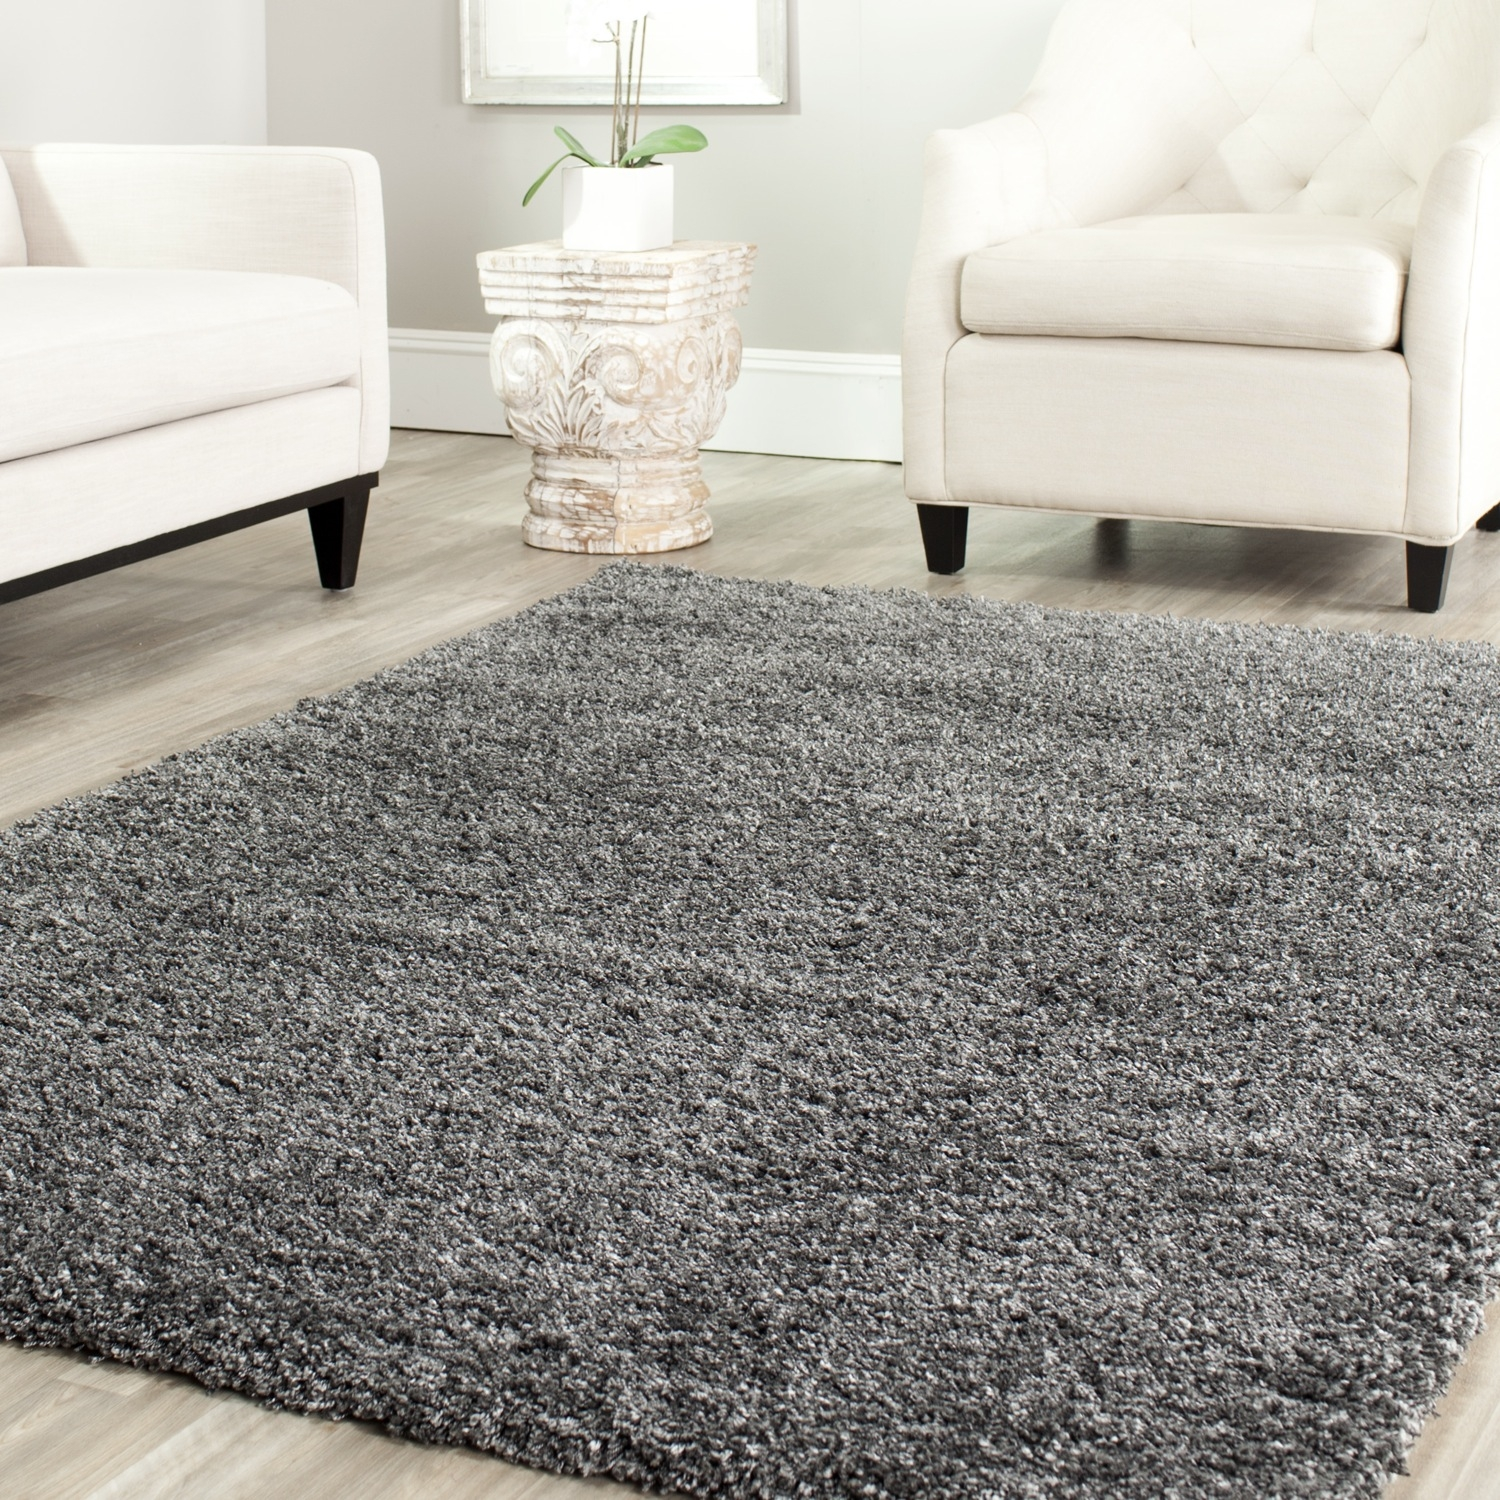 Interior Sisal Rugs Ikea 6×6 Rug Ikea Area Rugs Pertaining To Square Rugs 6× (Image 6 of 15)